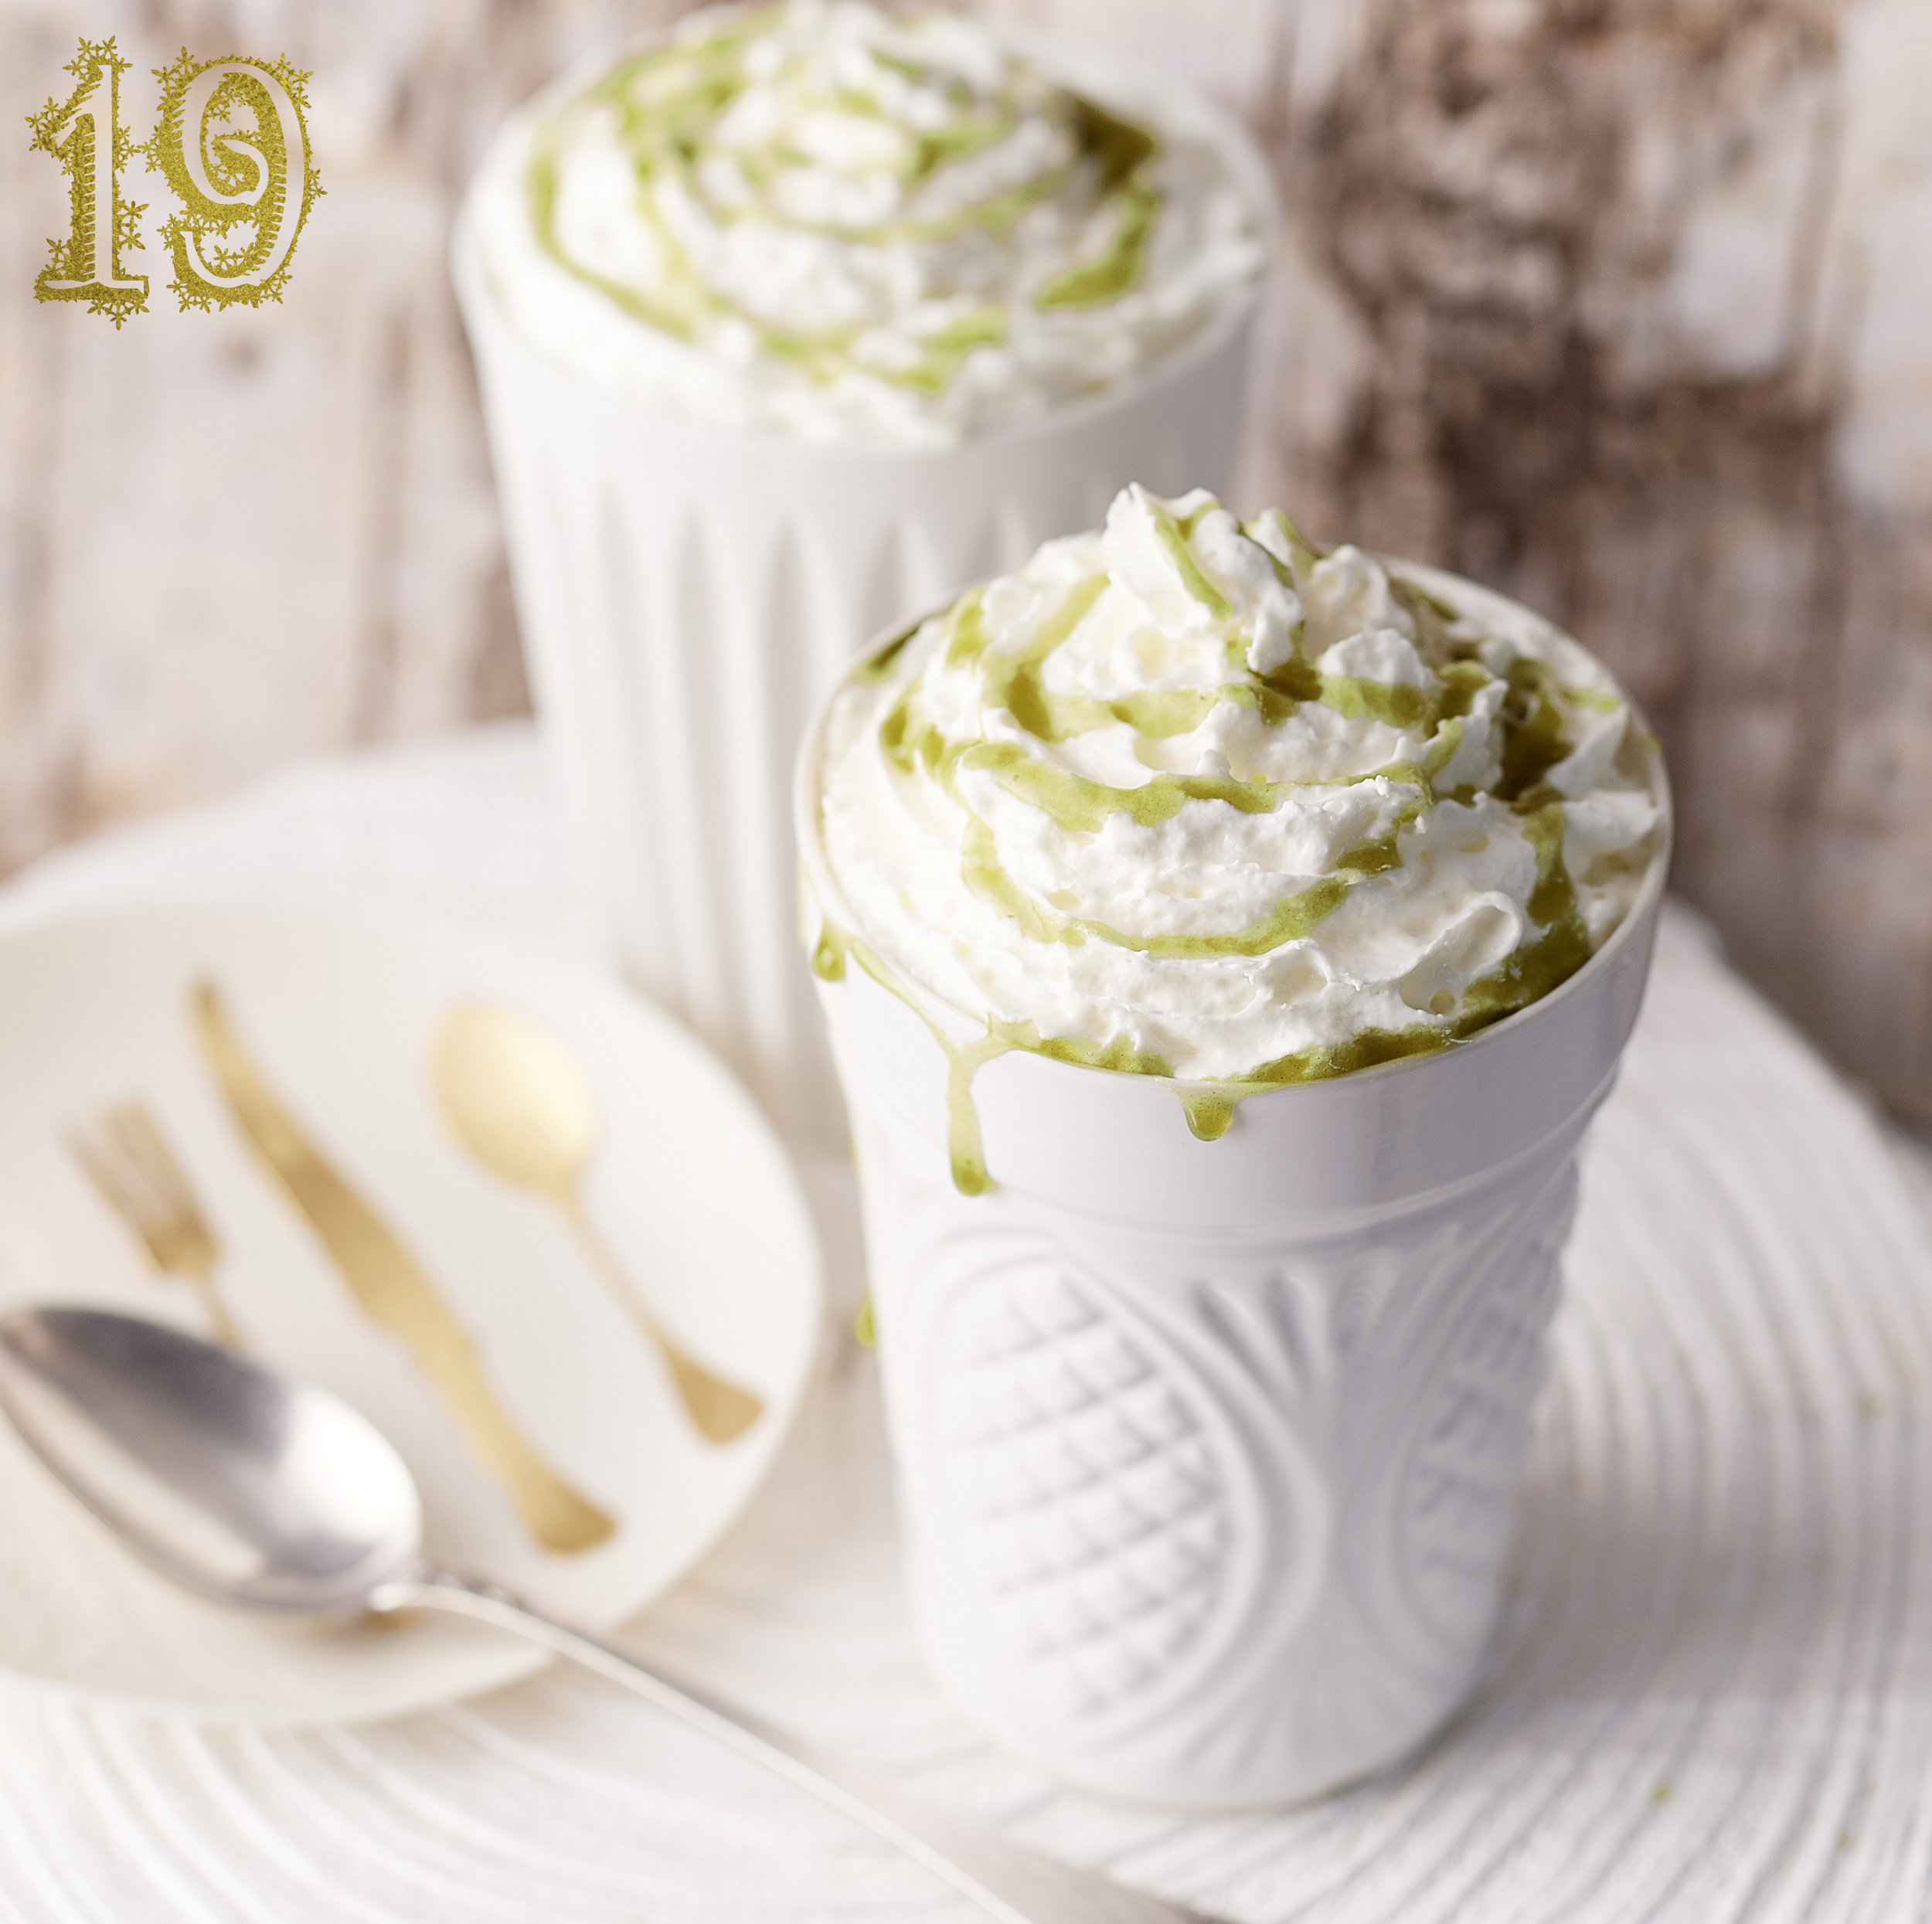 19.Hot Coconut with Matcha.jpg